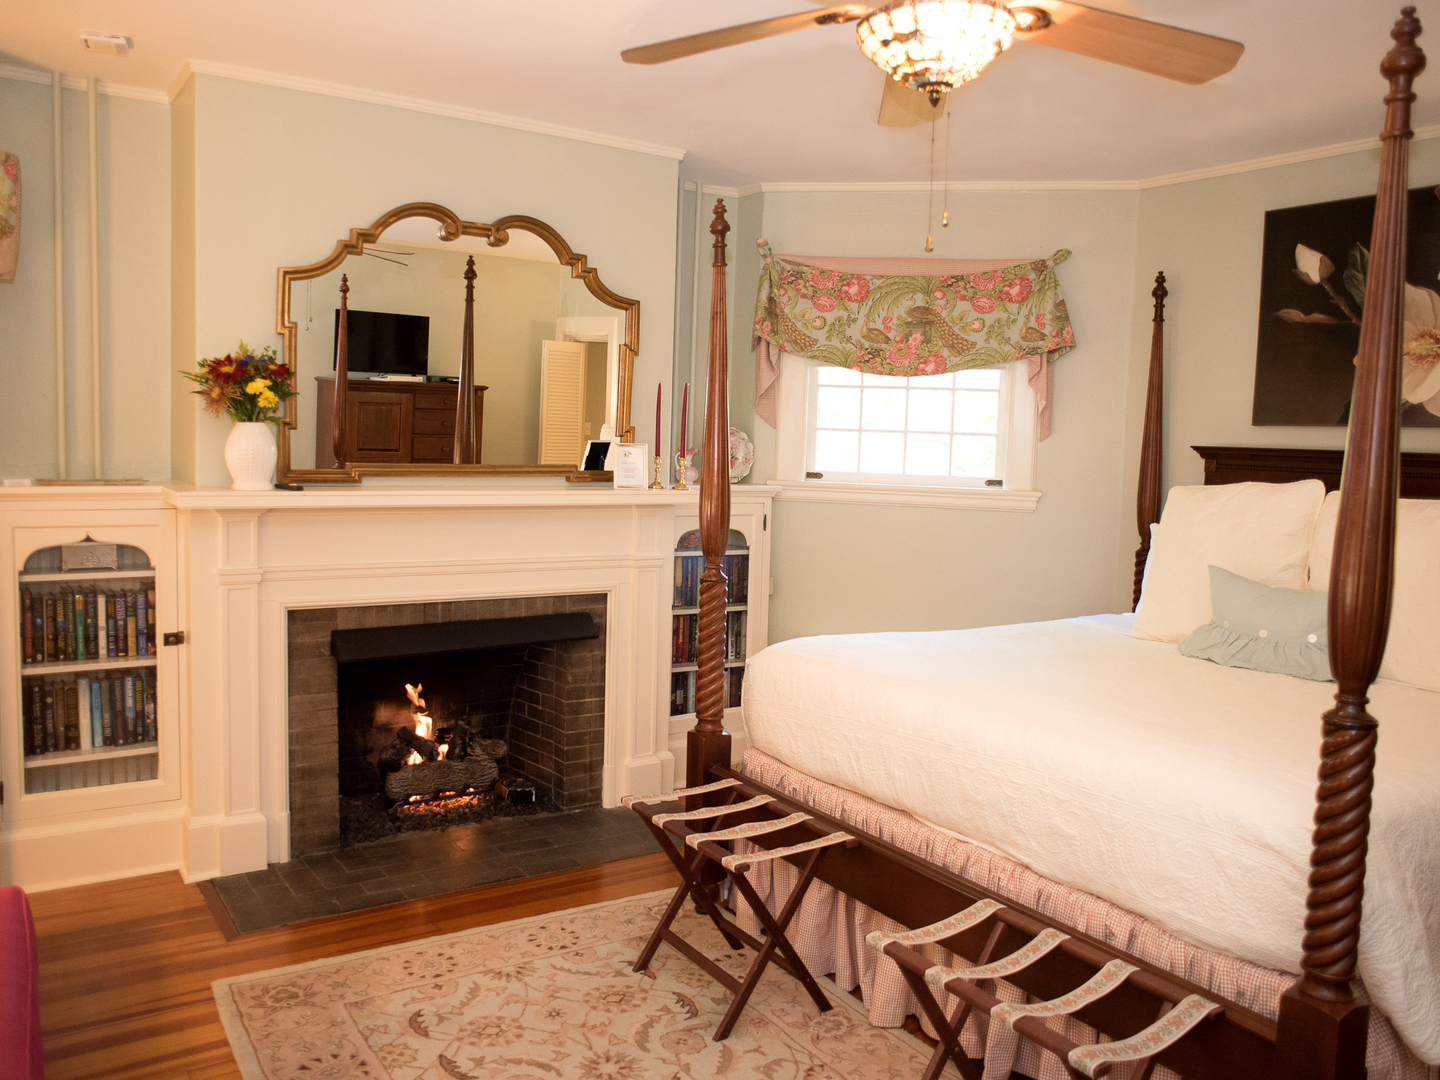 A living room with a bed and a fireplace at Pinecrest Bed & Breakfast.